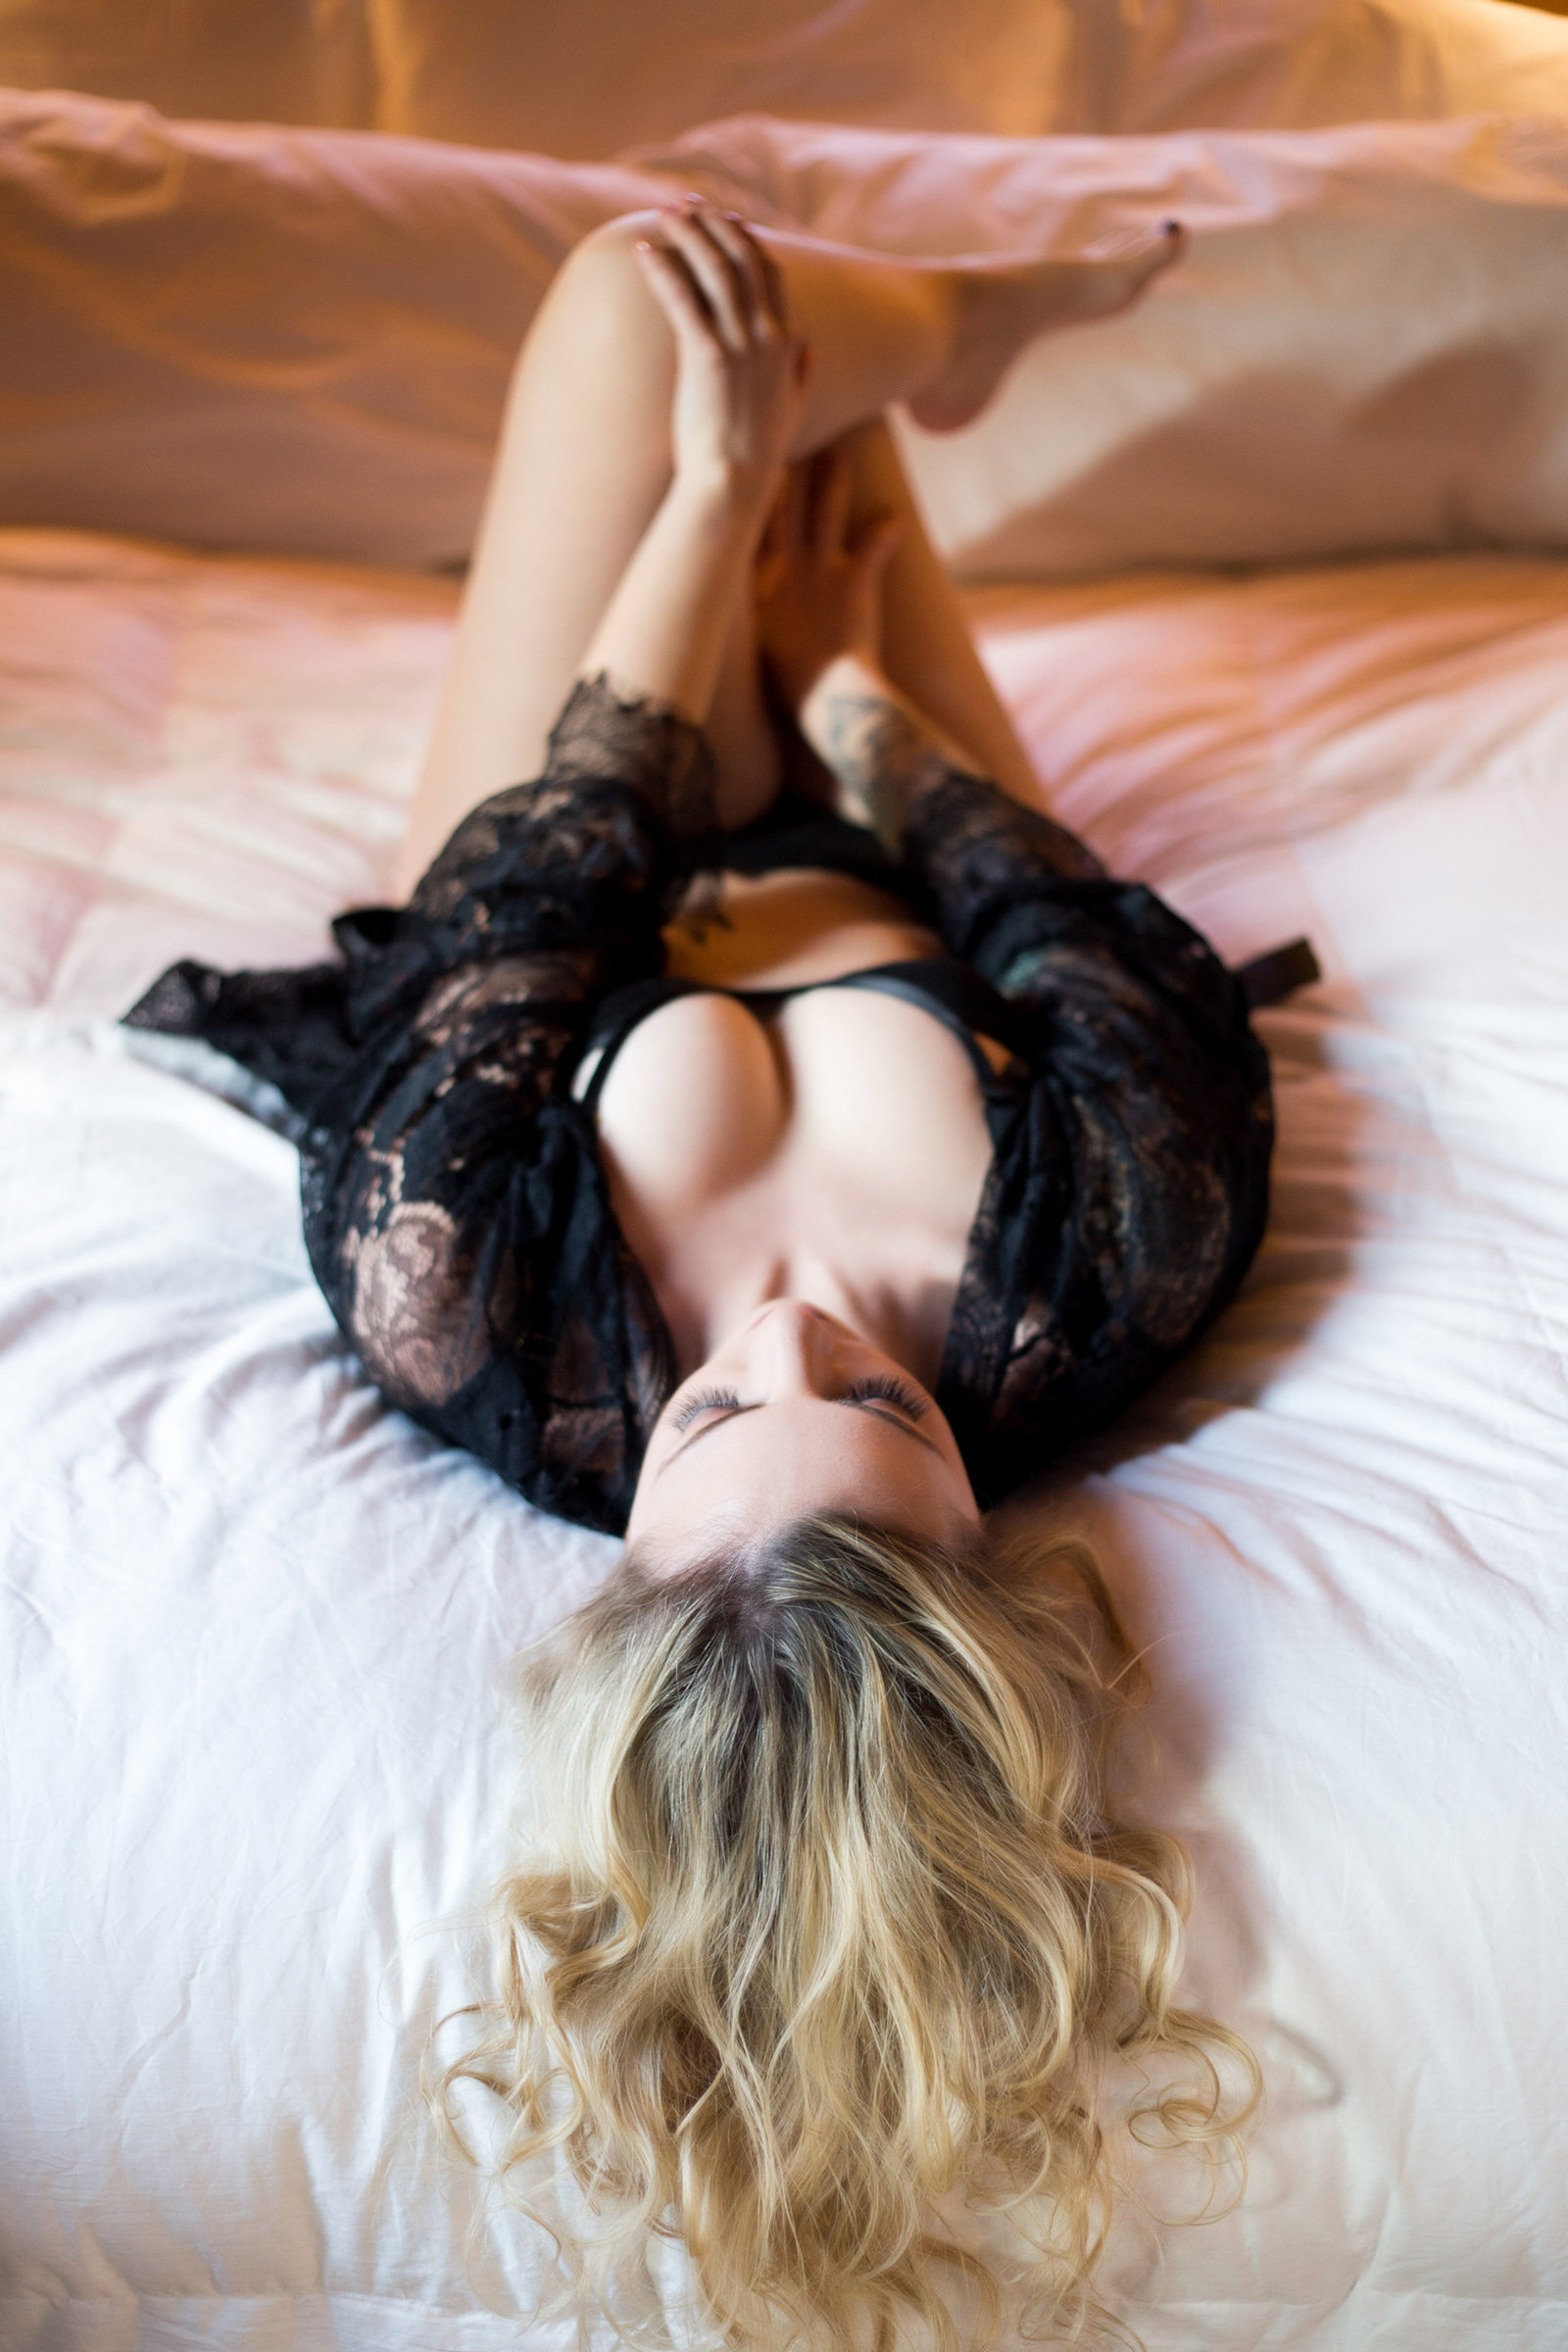 Someplace Images- Reno Boudoir Photographer0002